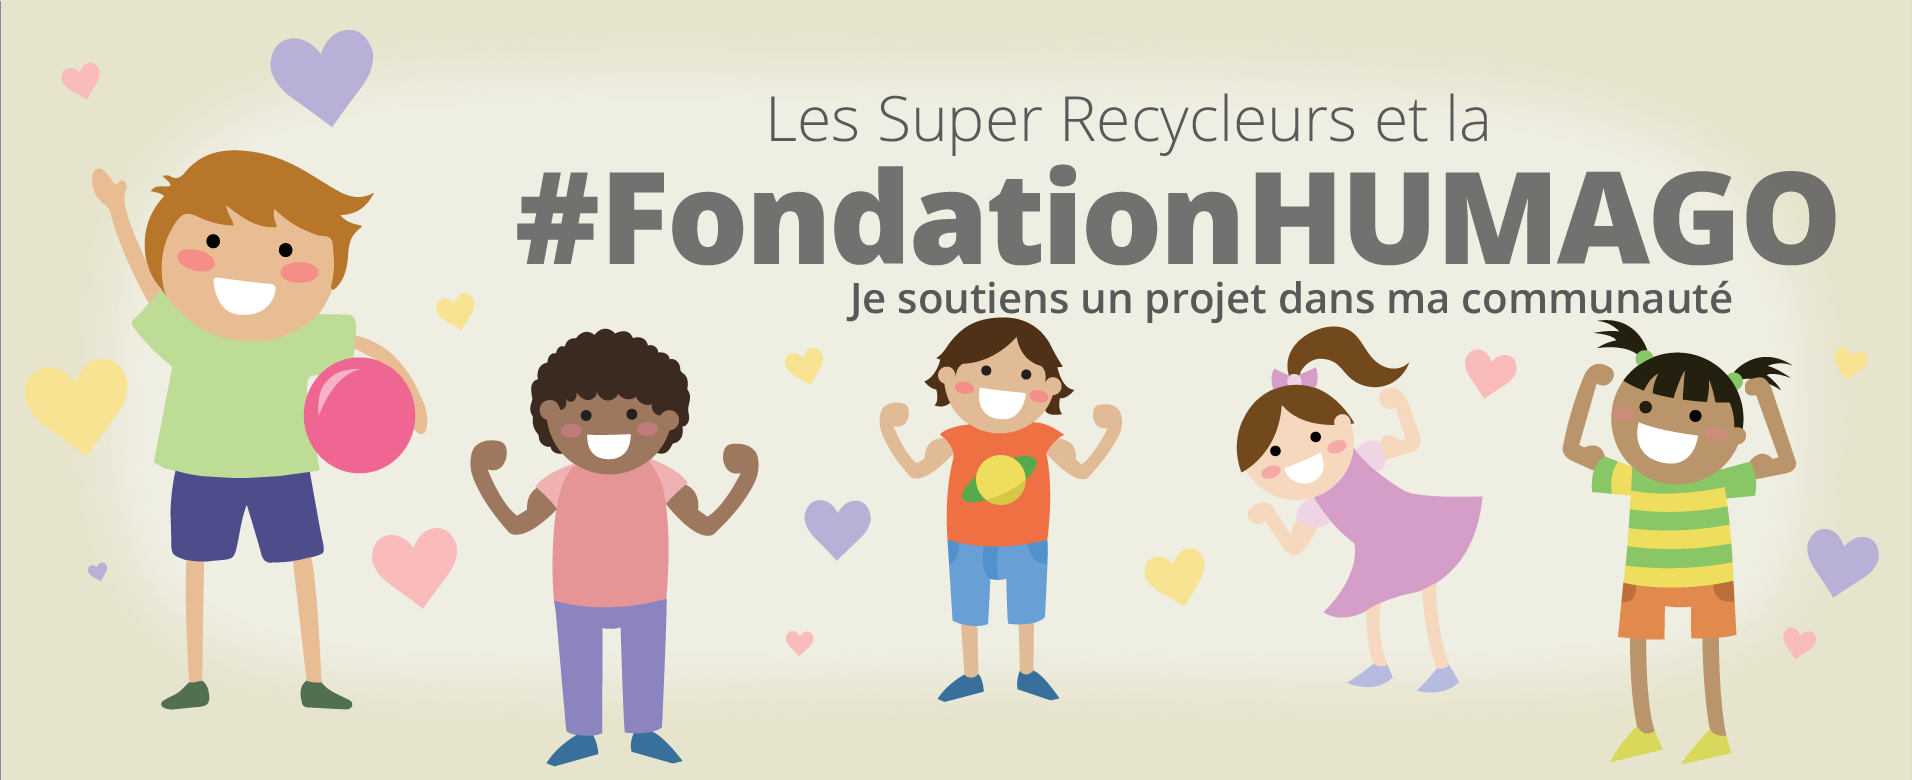 Fondation HUMAGO